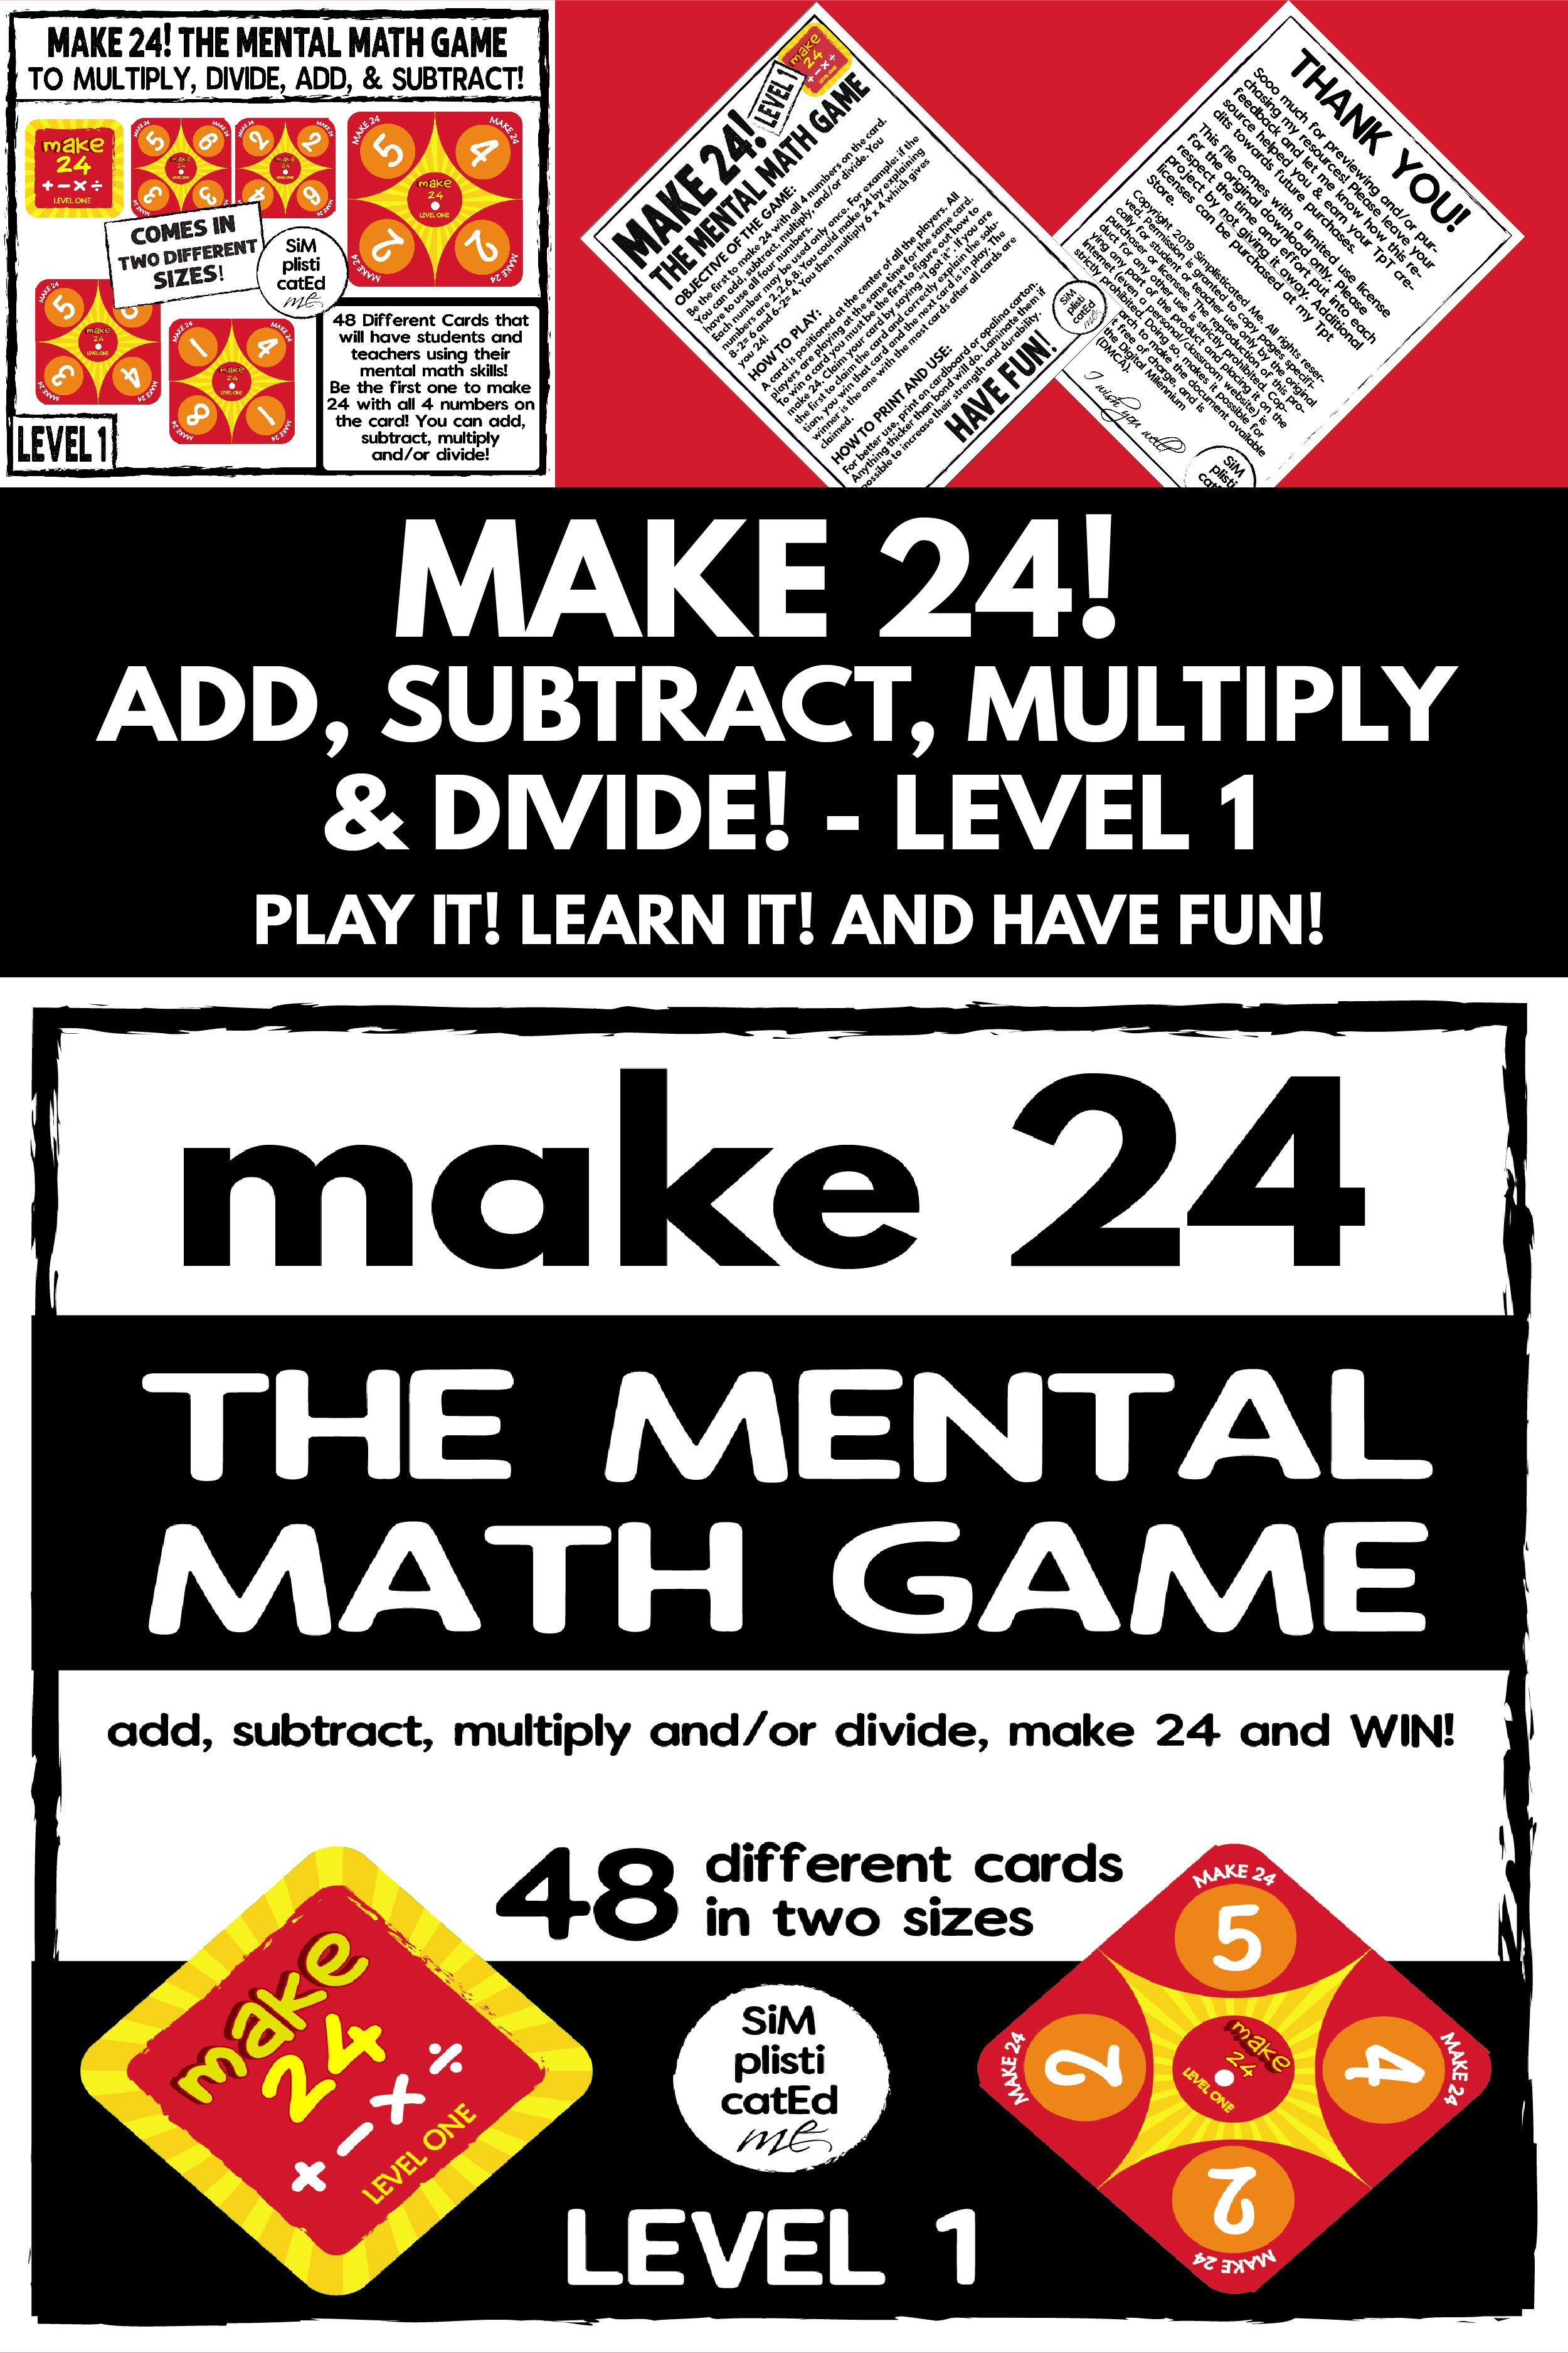 Make 24 Game Multiply Divide Add And Subtract Level 1 Mental Math Mental Math Math Mental Math Games [ 3751 x 2500 Pixel ]